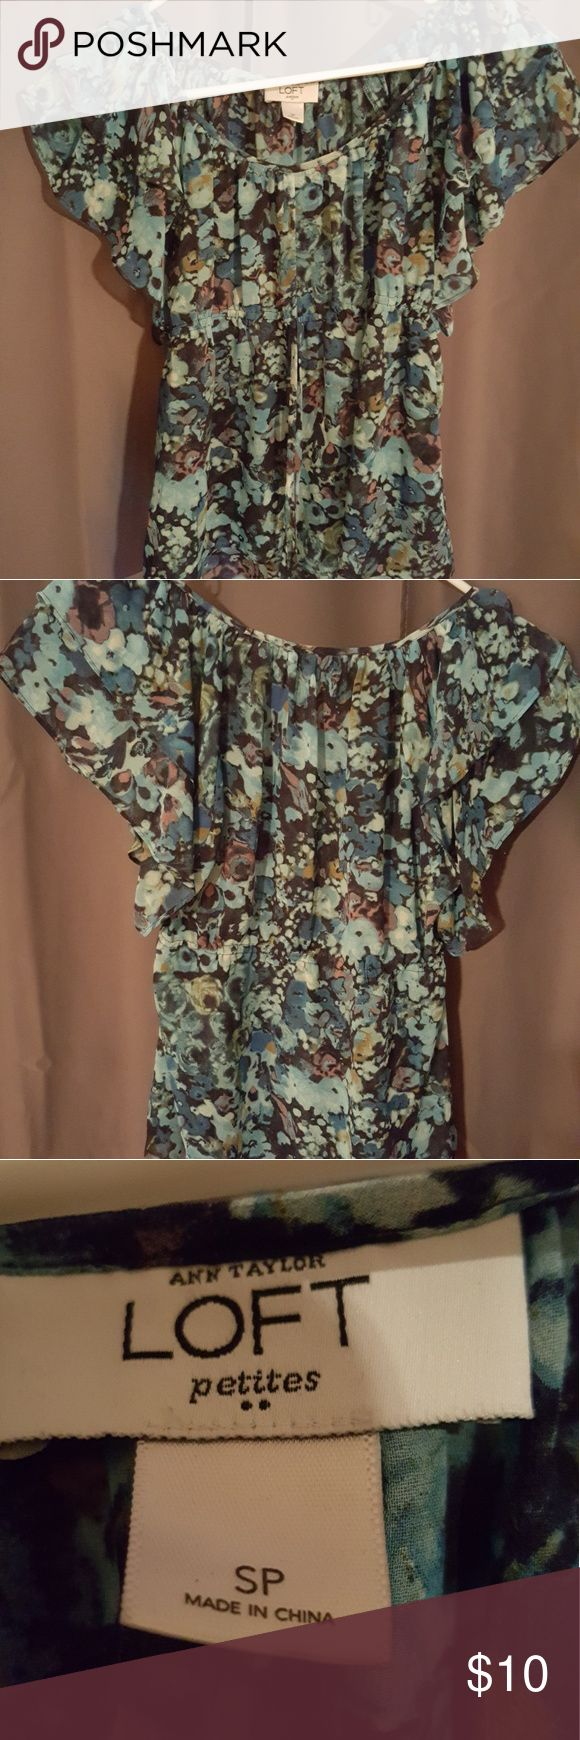 Anne Taylor LOFT sheer floral top Good condition...only worn a couple of times. Sheer floral material does not wrinkle. Size small petite. LOFT Tops Blouses